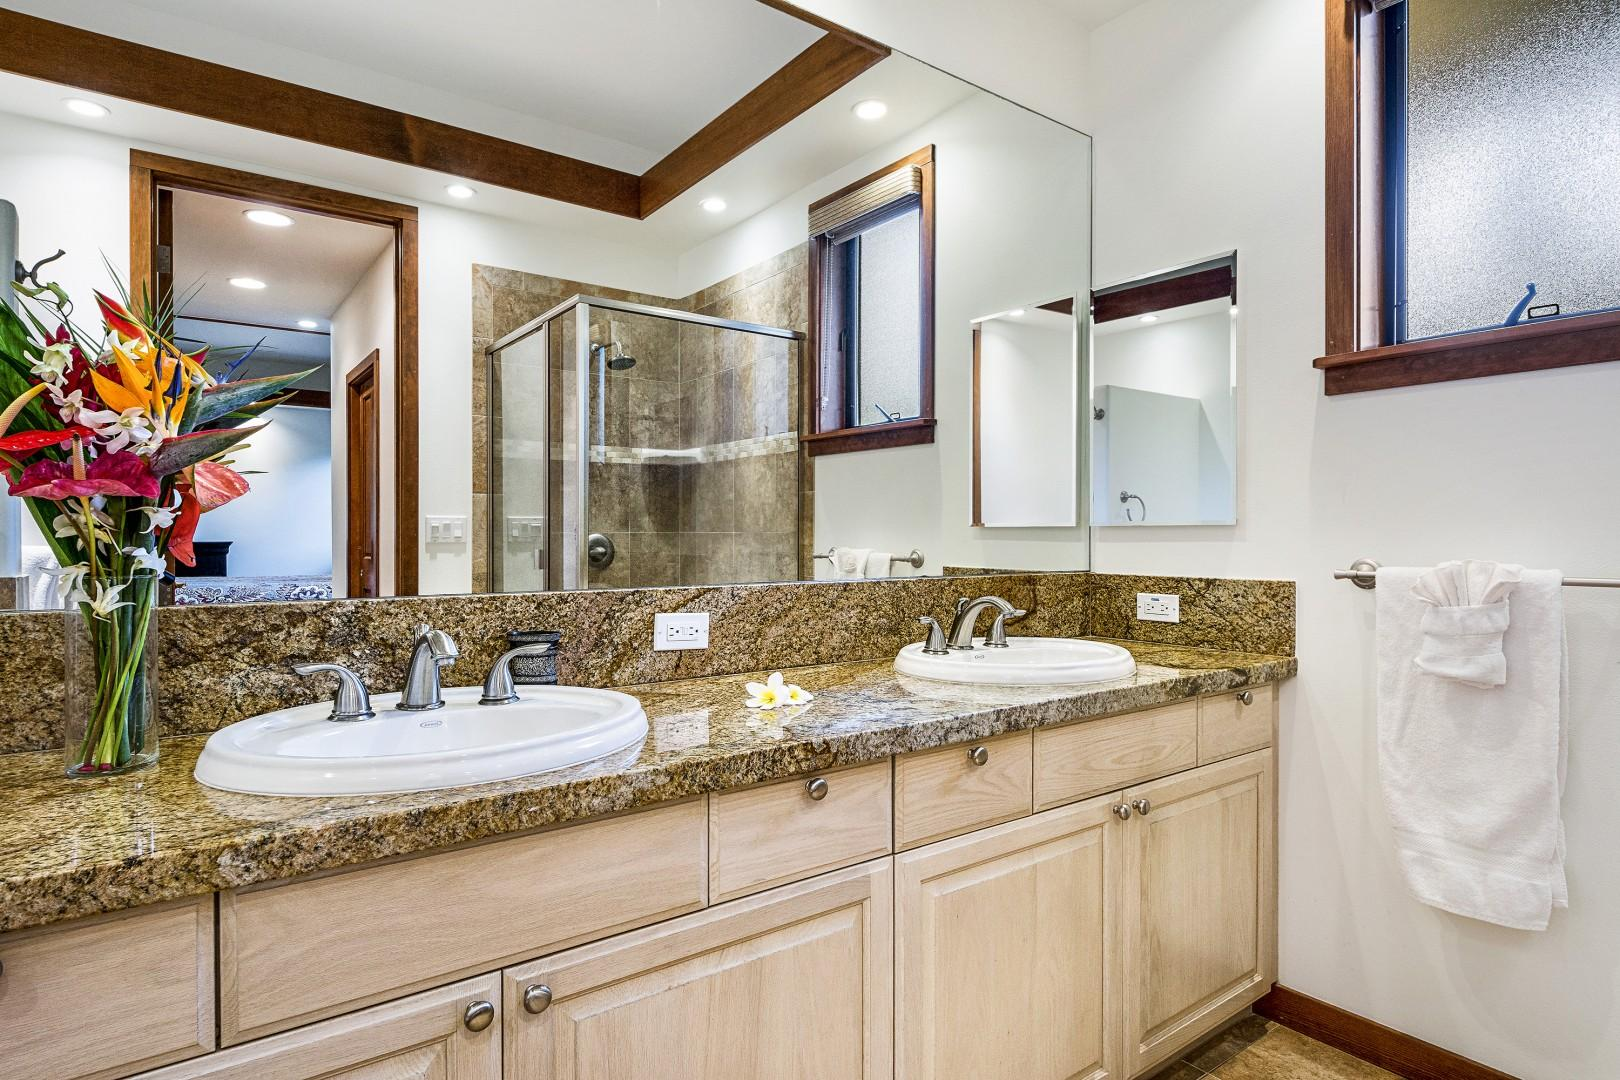 Dual sinks in the Master bathroom